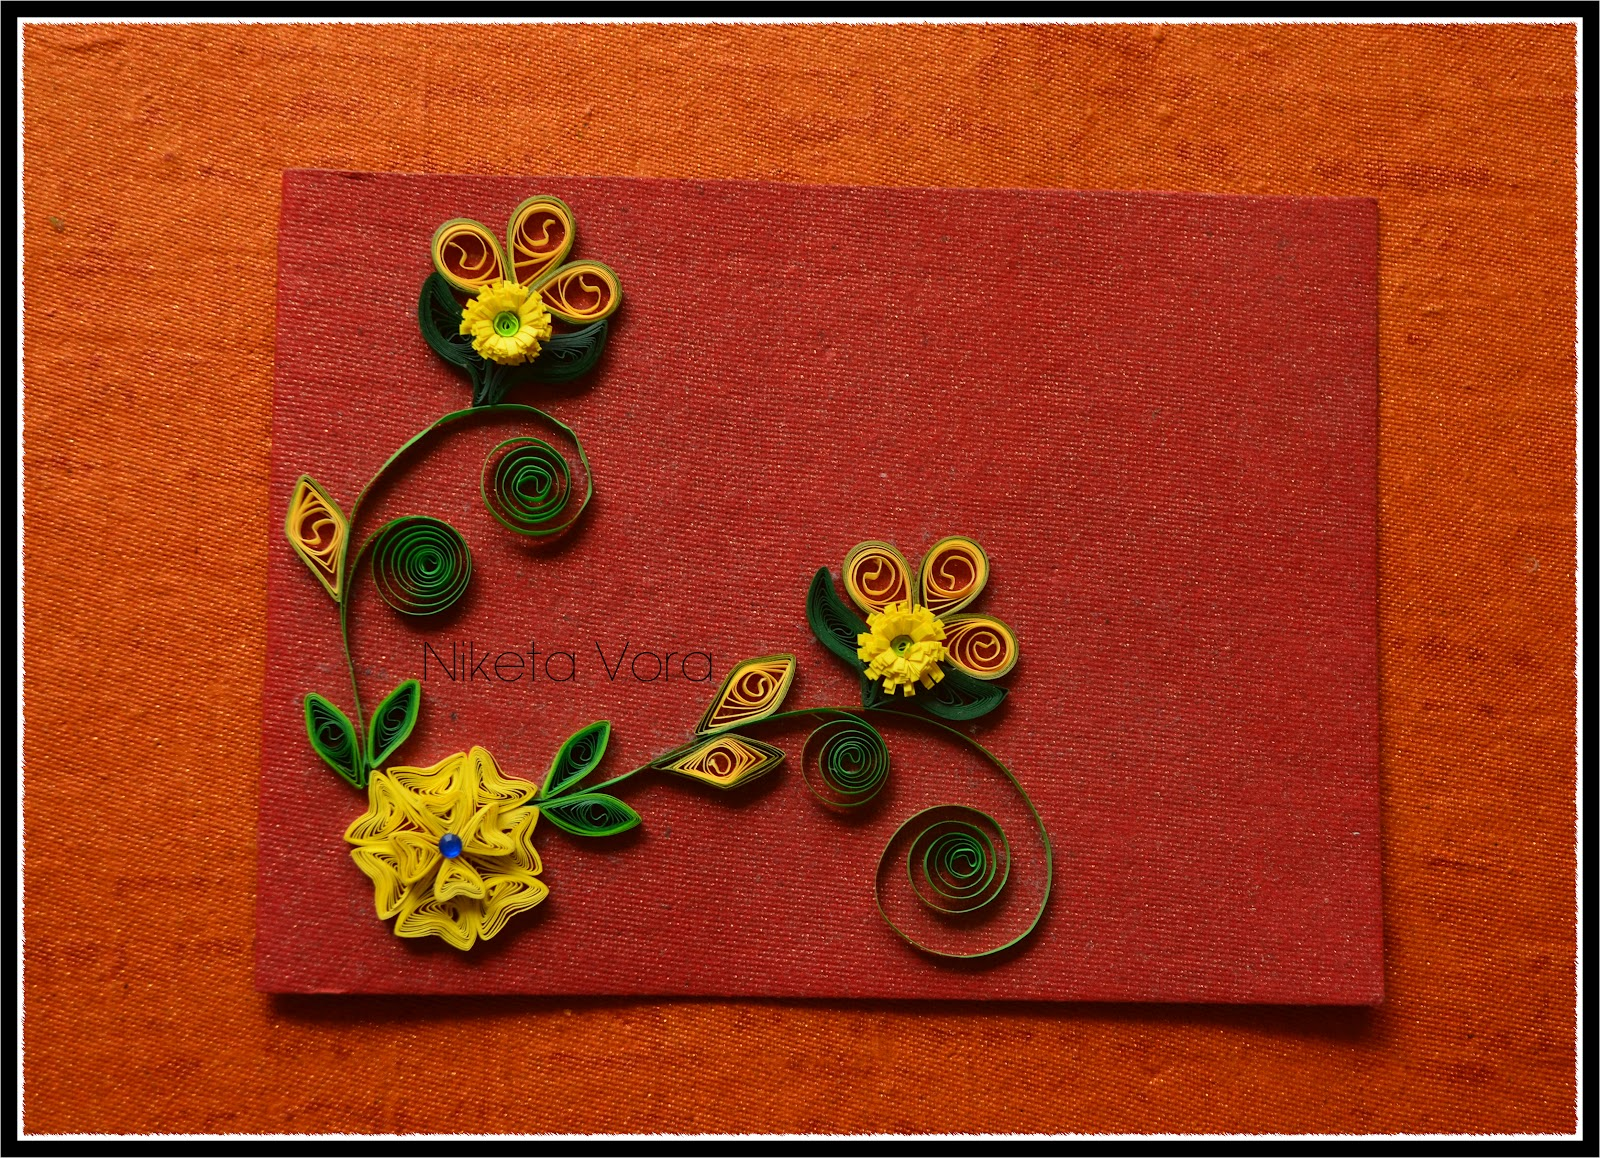 How to write greeting cards & get paid. Niketa's Creative Corner: Handmade quilled greeting card